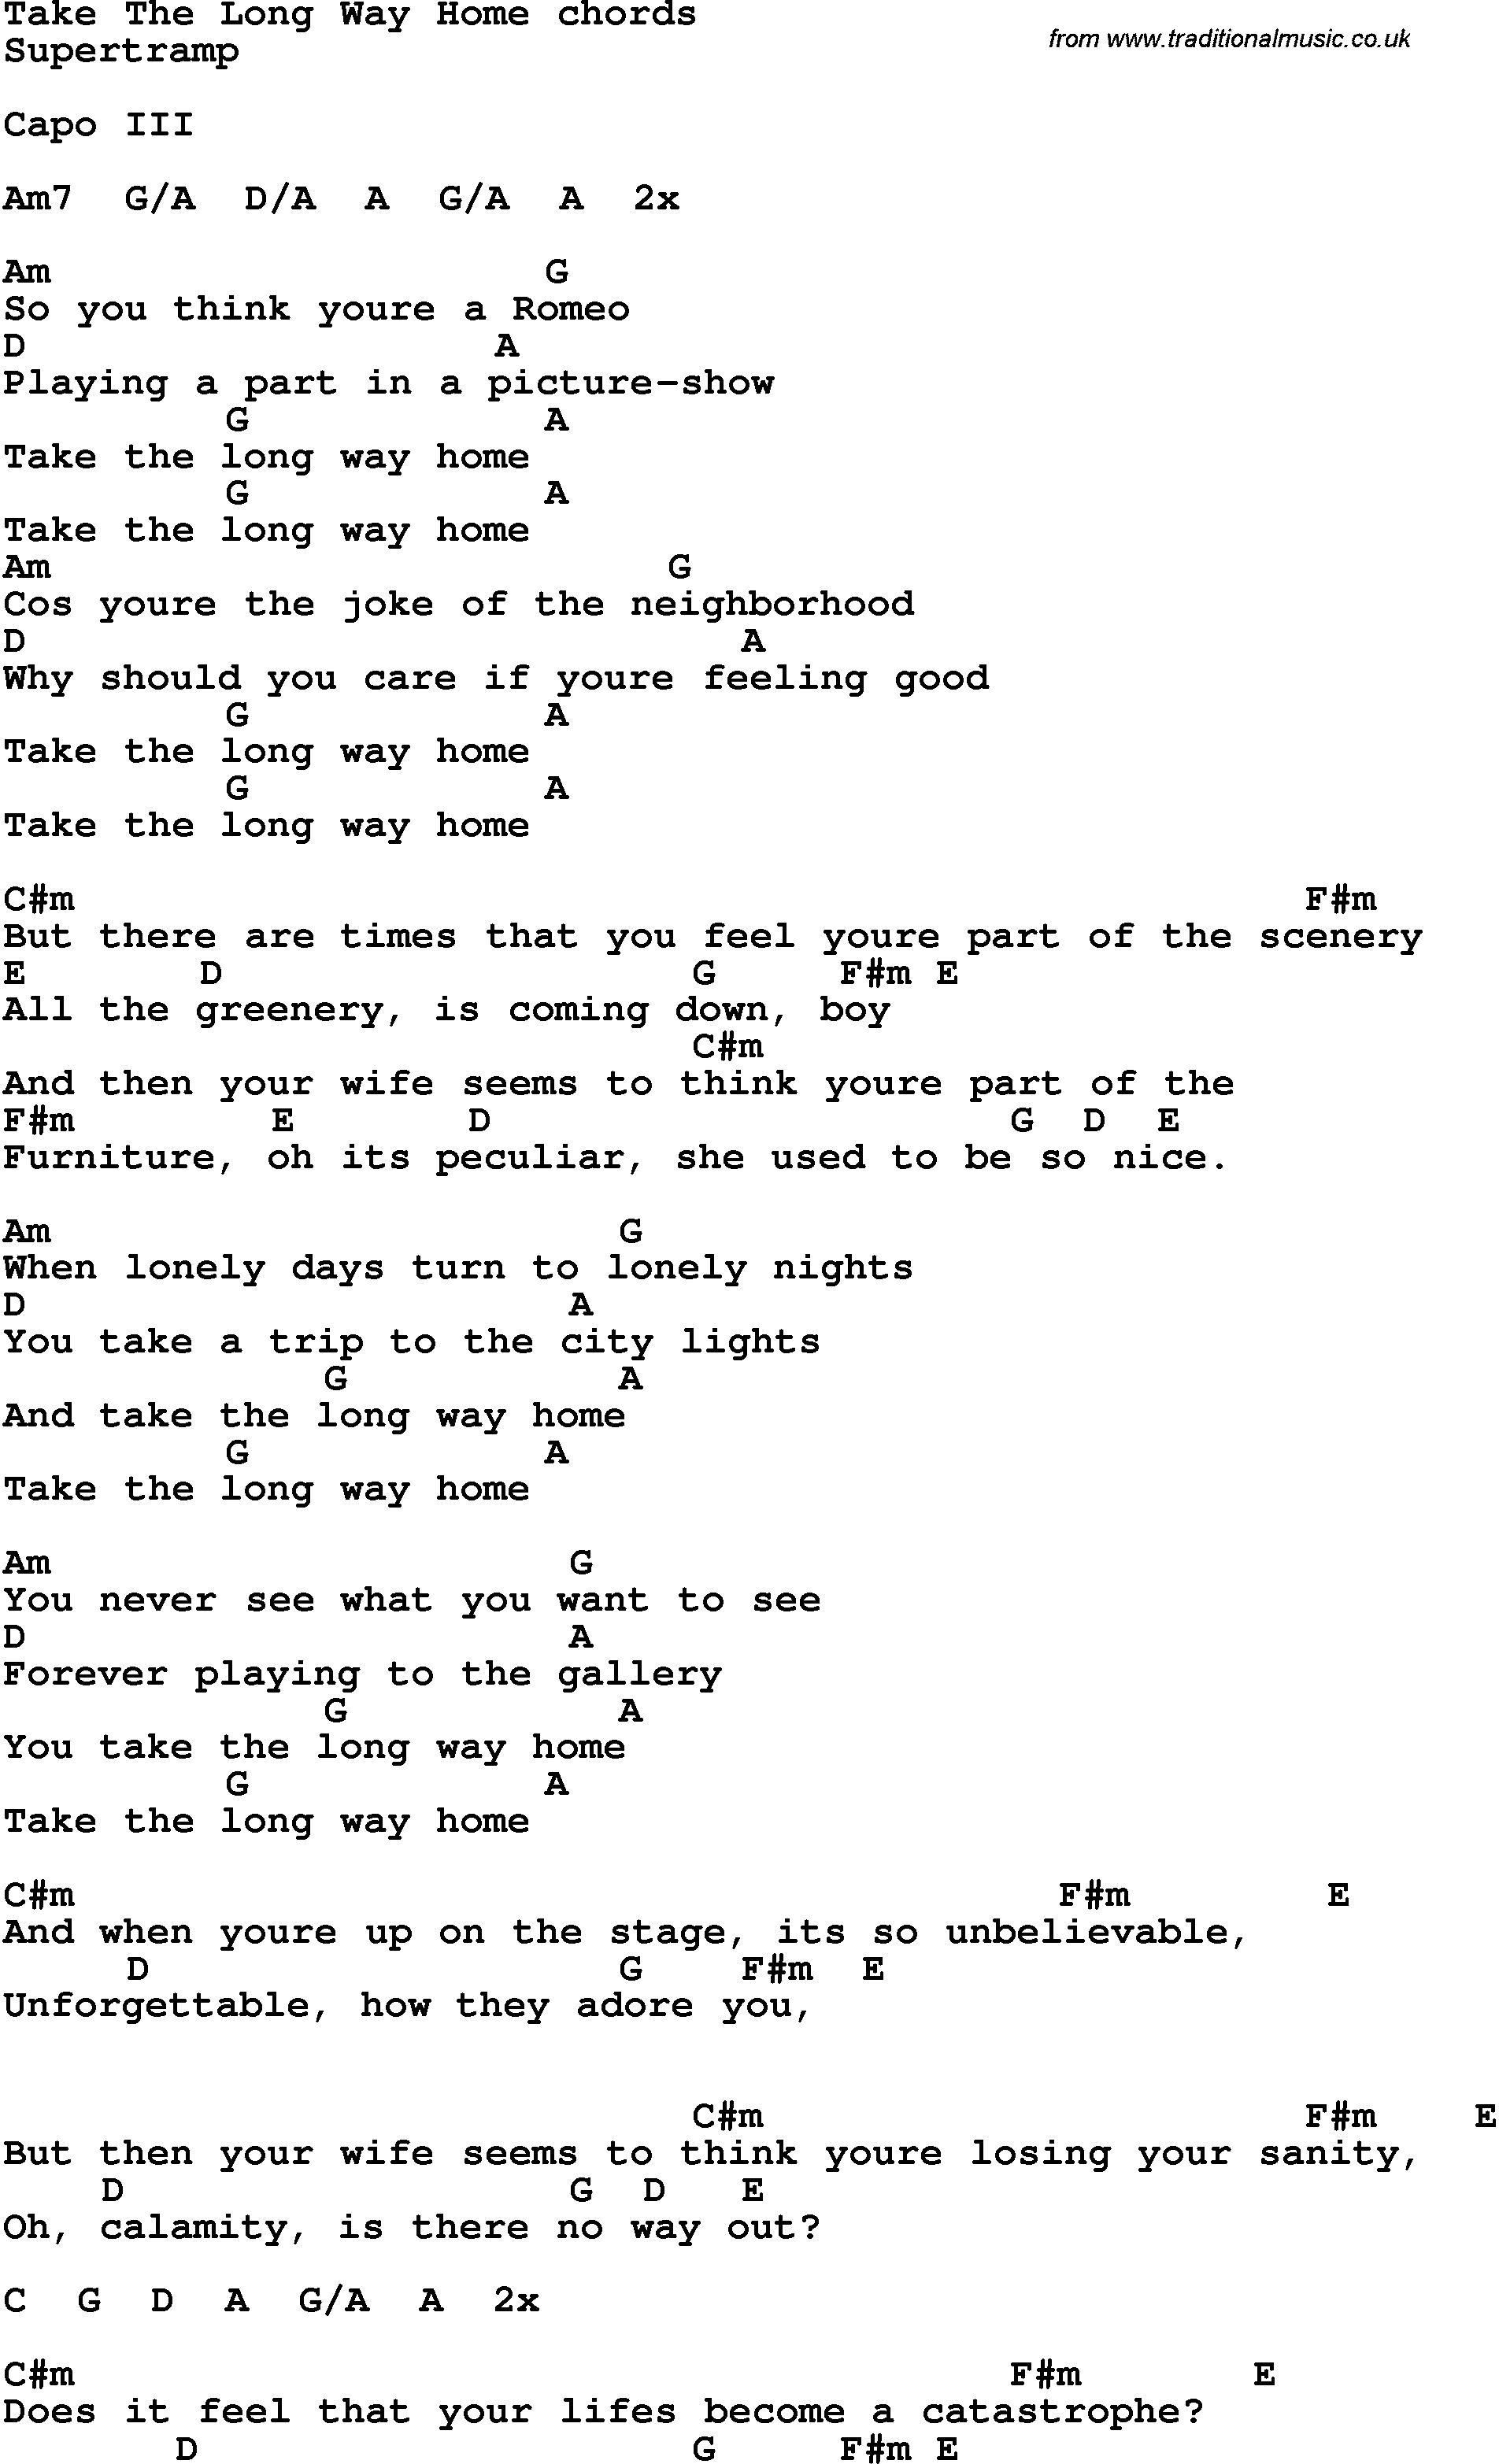 SEVENTH WONDER - LONG WAY HOME LYRICS